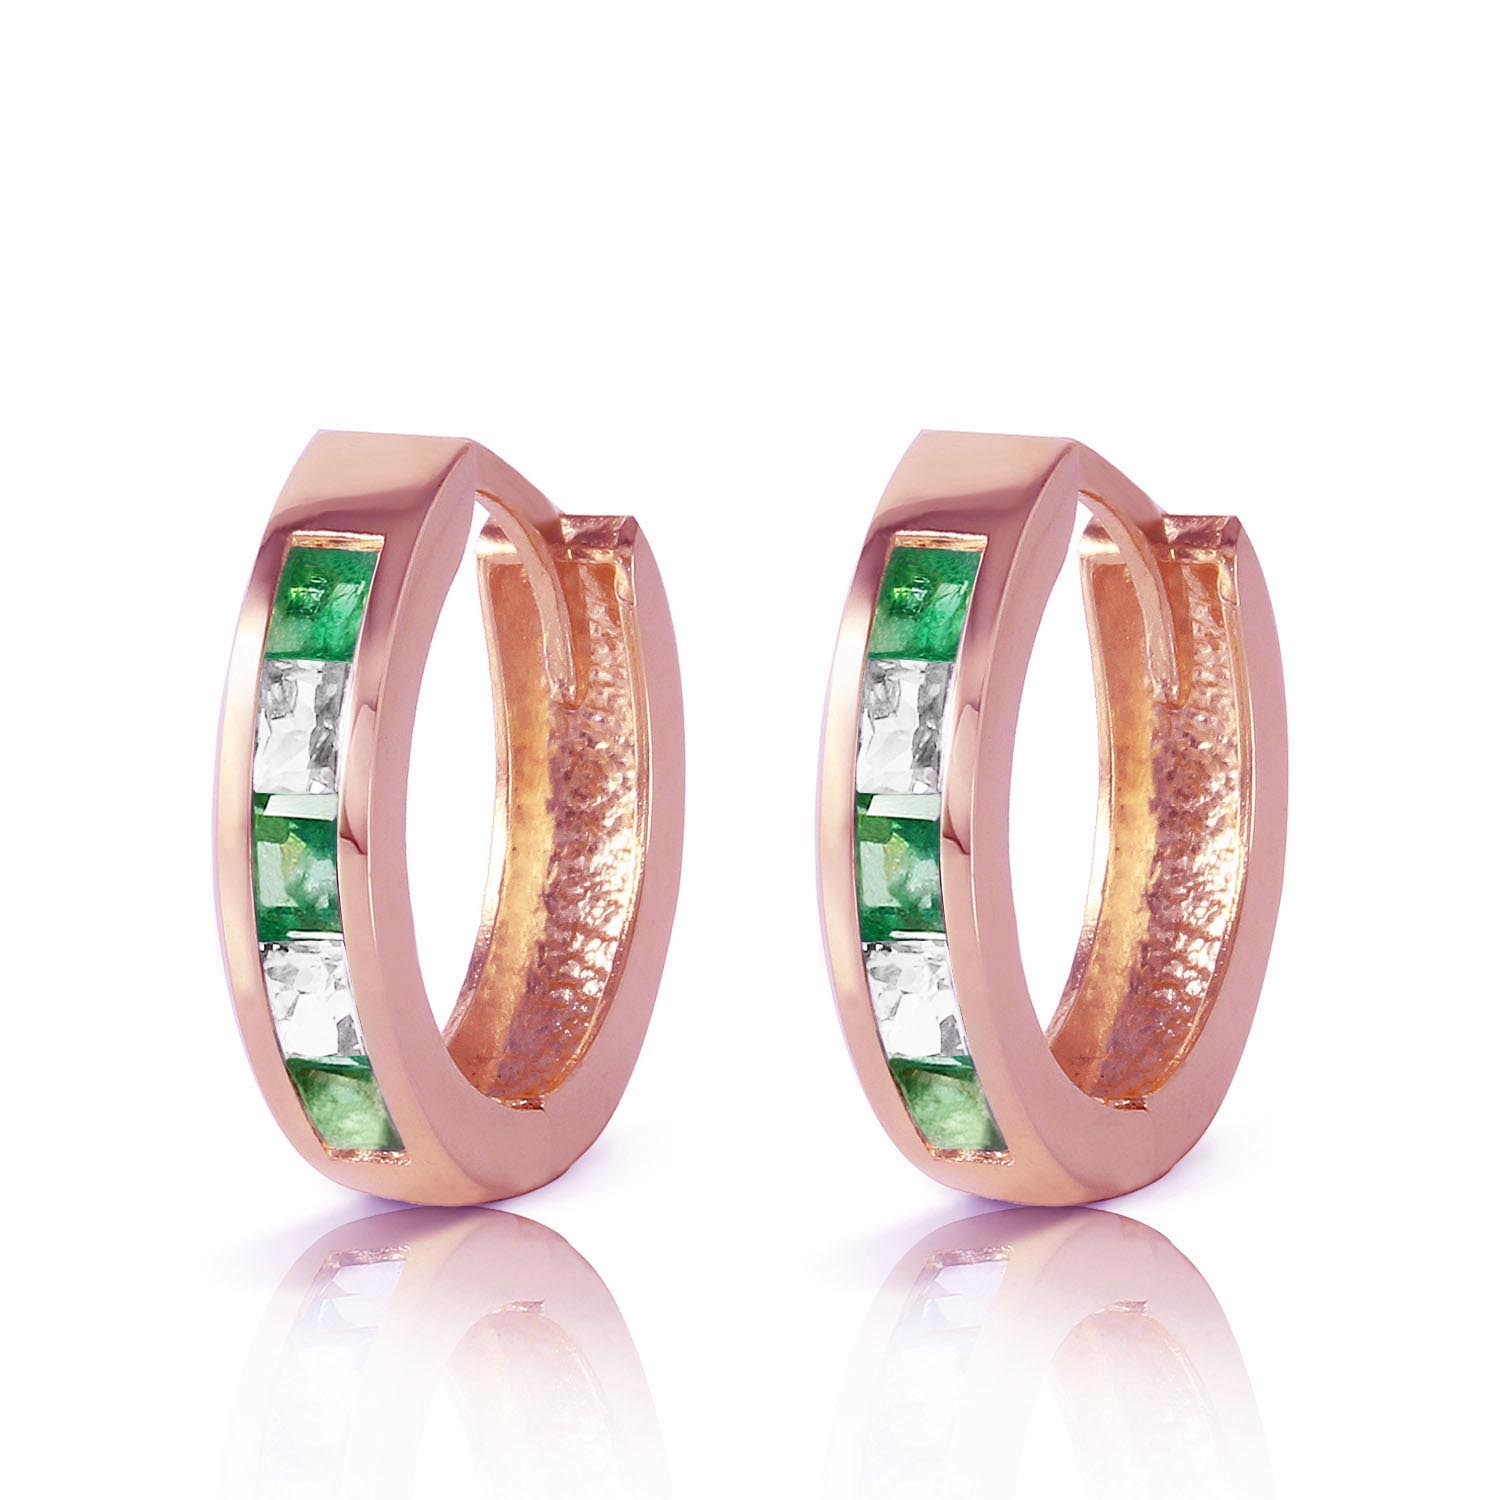 Emerald & White Topaz Huggie Earrings in 9ct Rose Gold